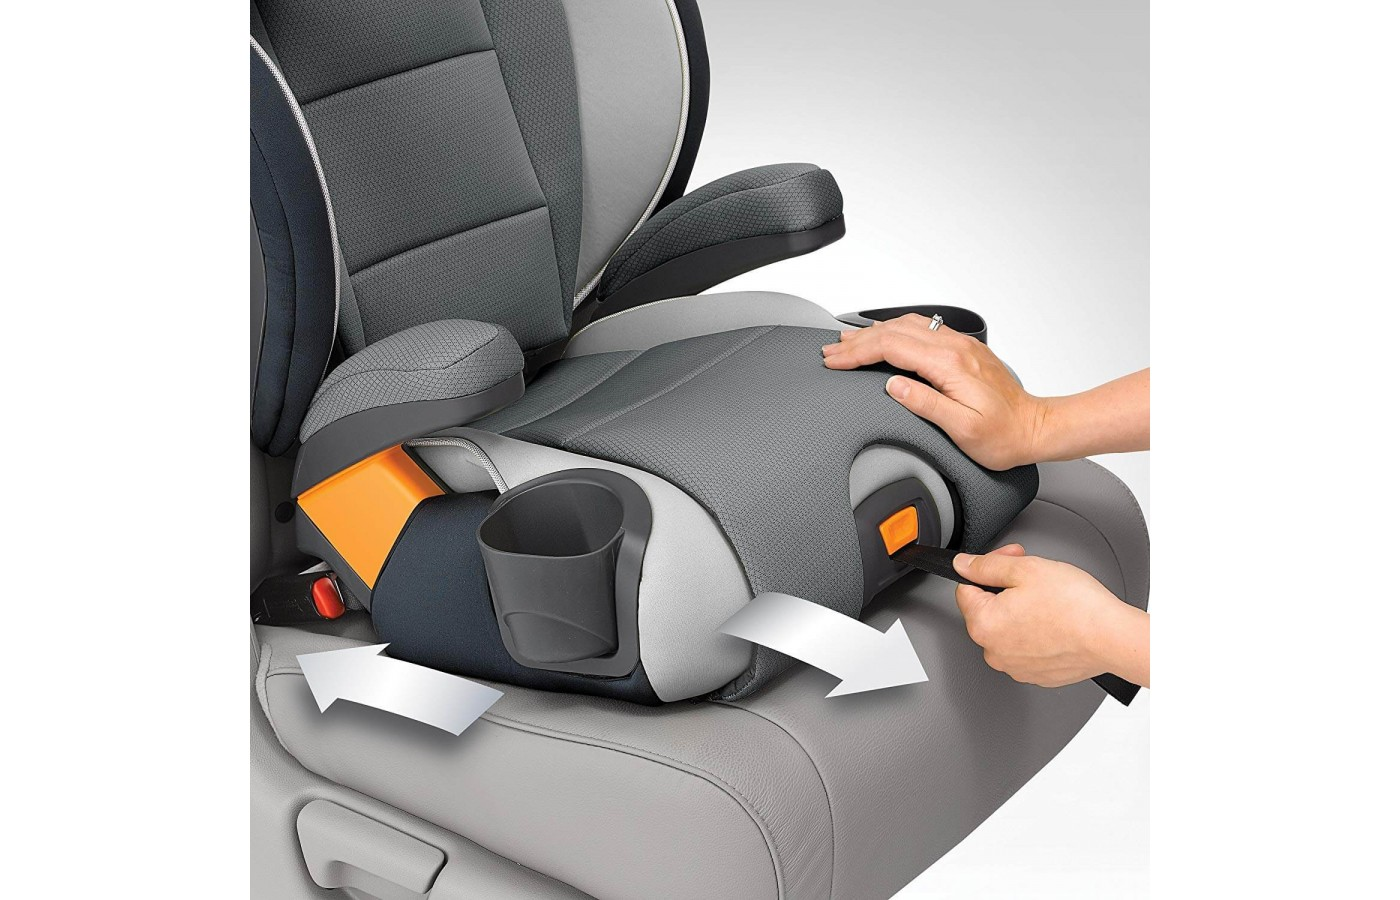 It is easy to install in your car